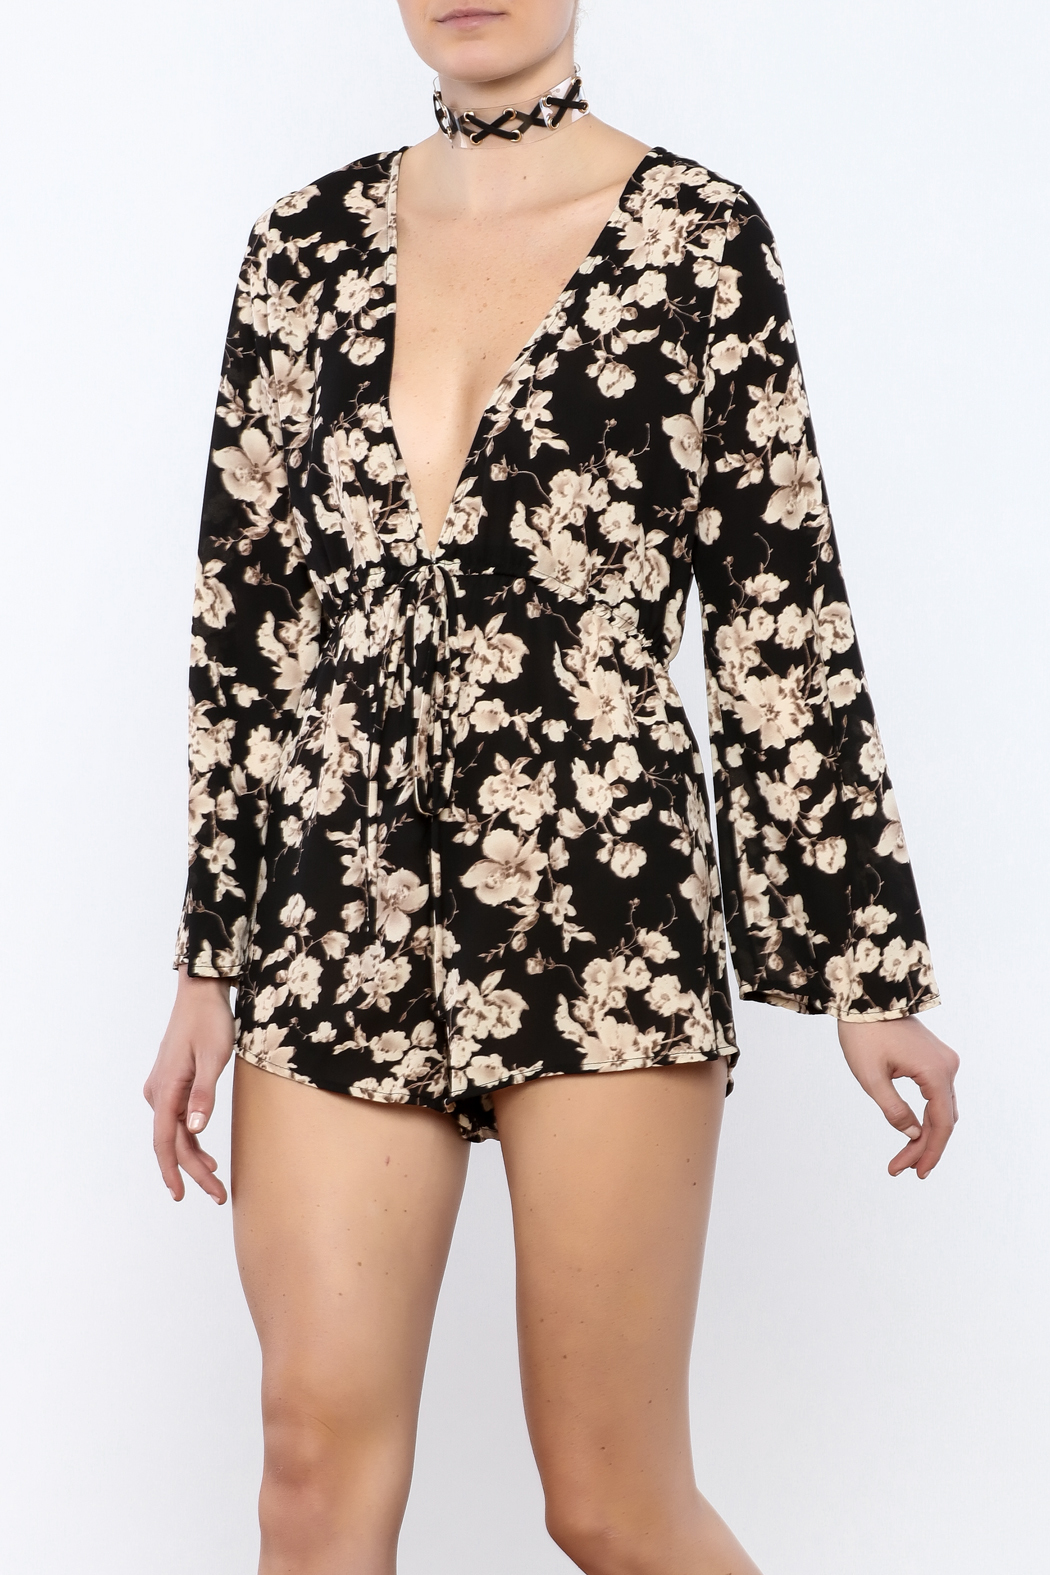 Coveted Clothing Black Floral Romper - Main Image